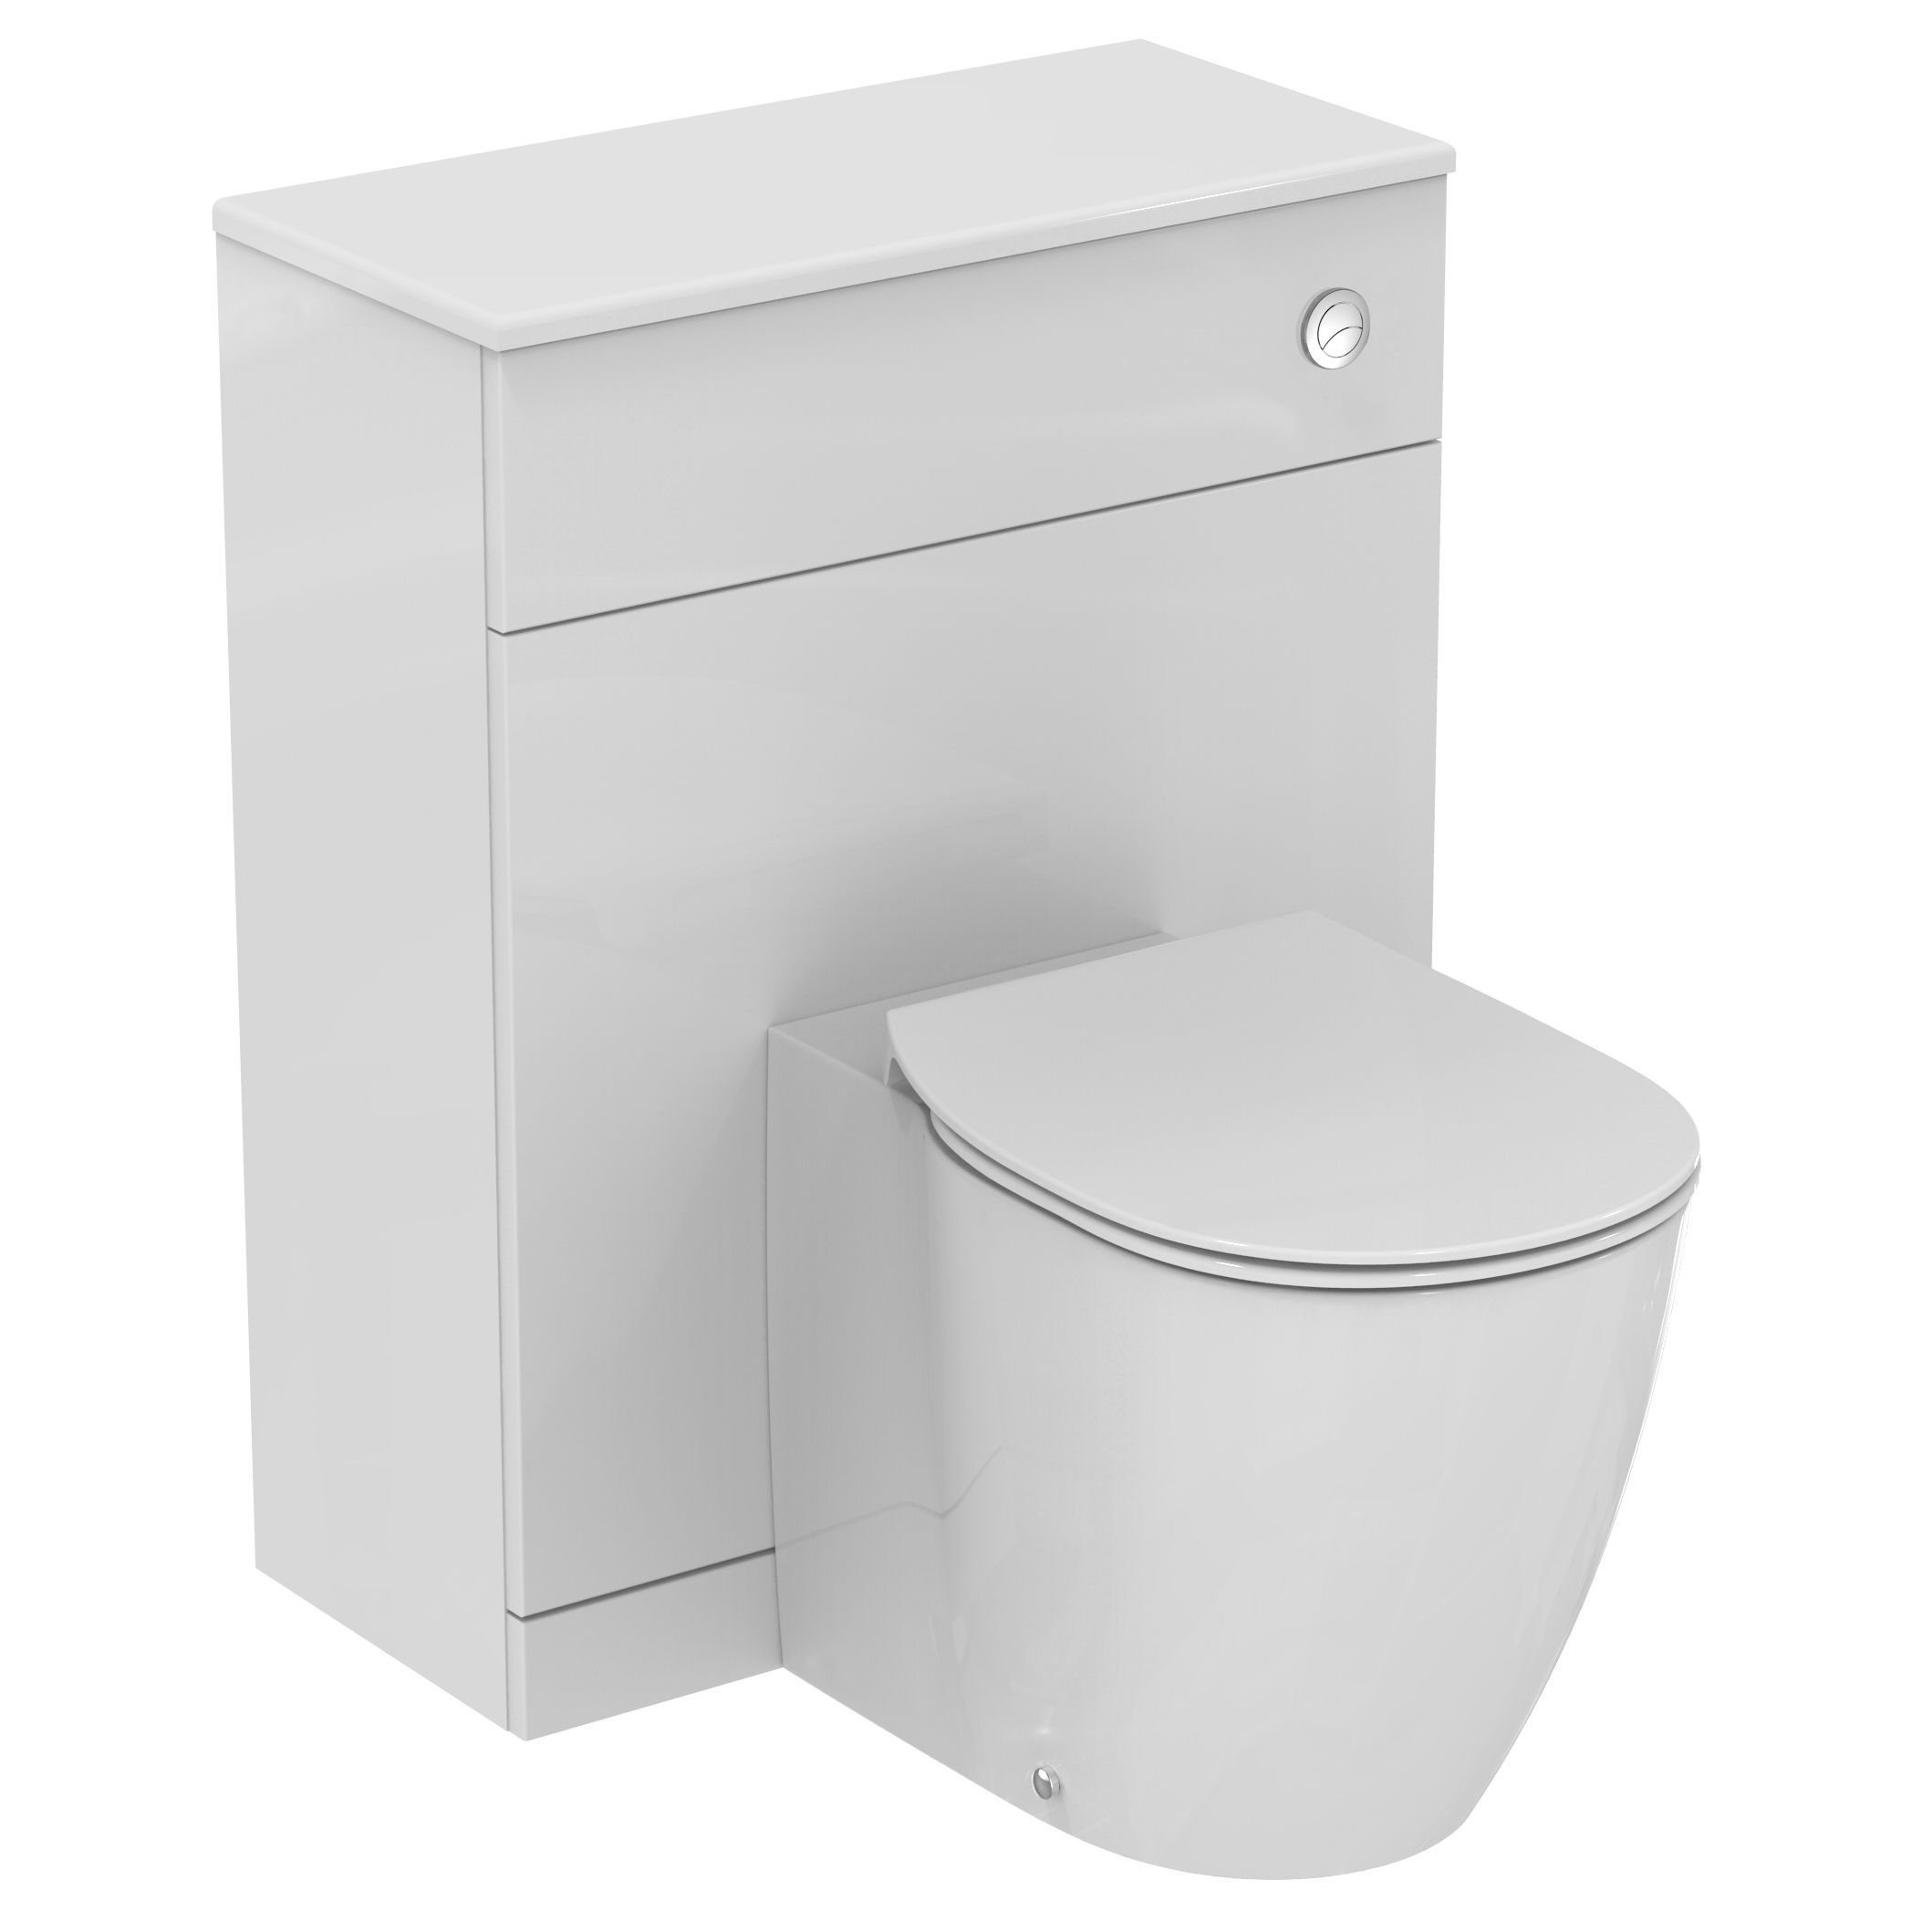 ideal standard imagine aquablade back to wall toilet unit wc set with soft close seat. Black Bedroom Furniture Sets. Home Design Ideas